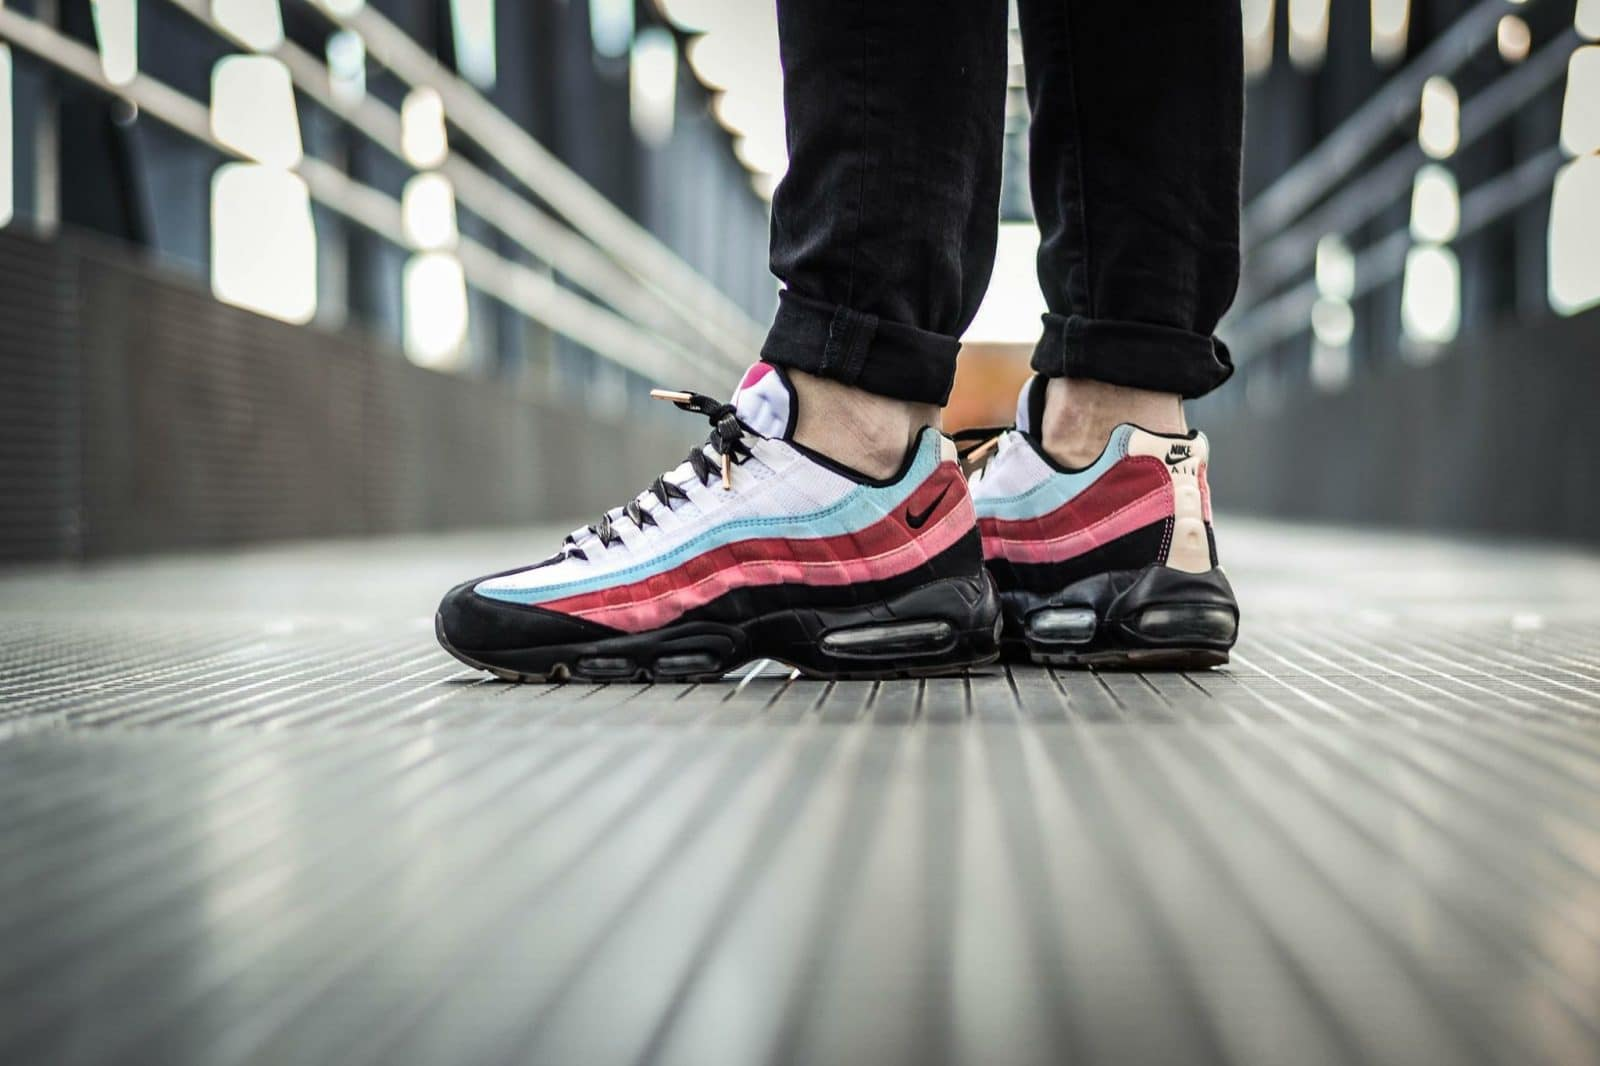 lacets plats noirs embouts or - Pinroll lacets baskets et sneakers - Nike Air Max 95